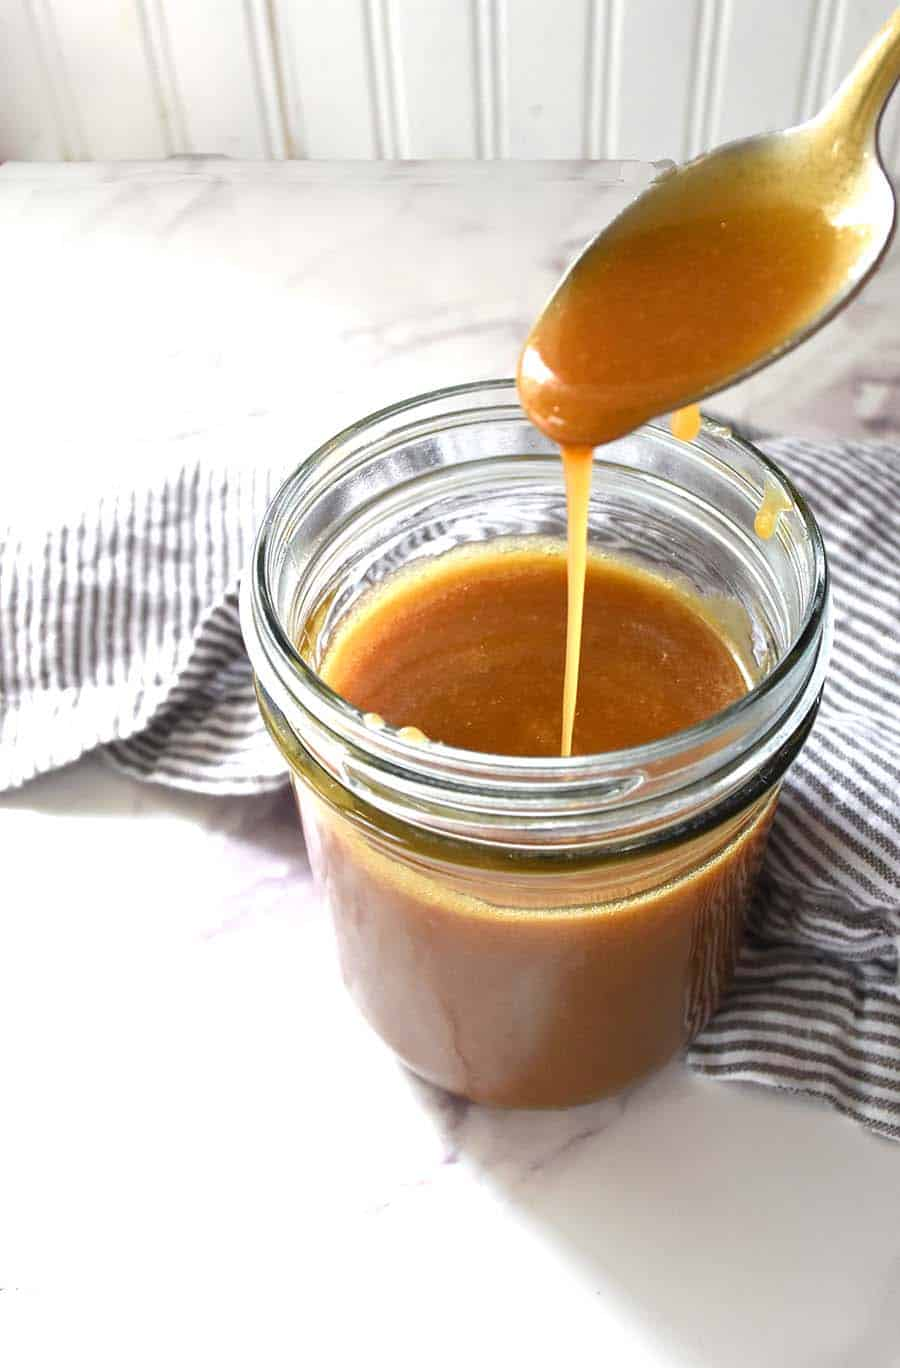 It only takes 5 ingredients to make this yummy caramel sauce!